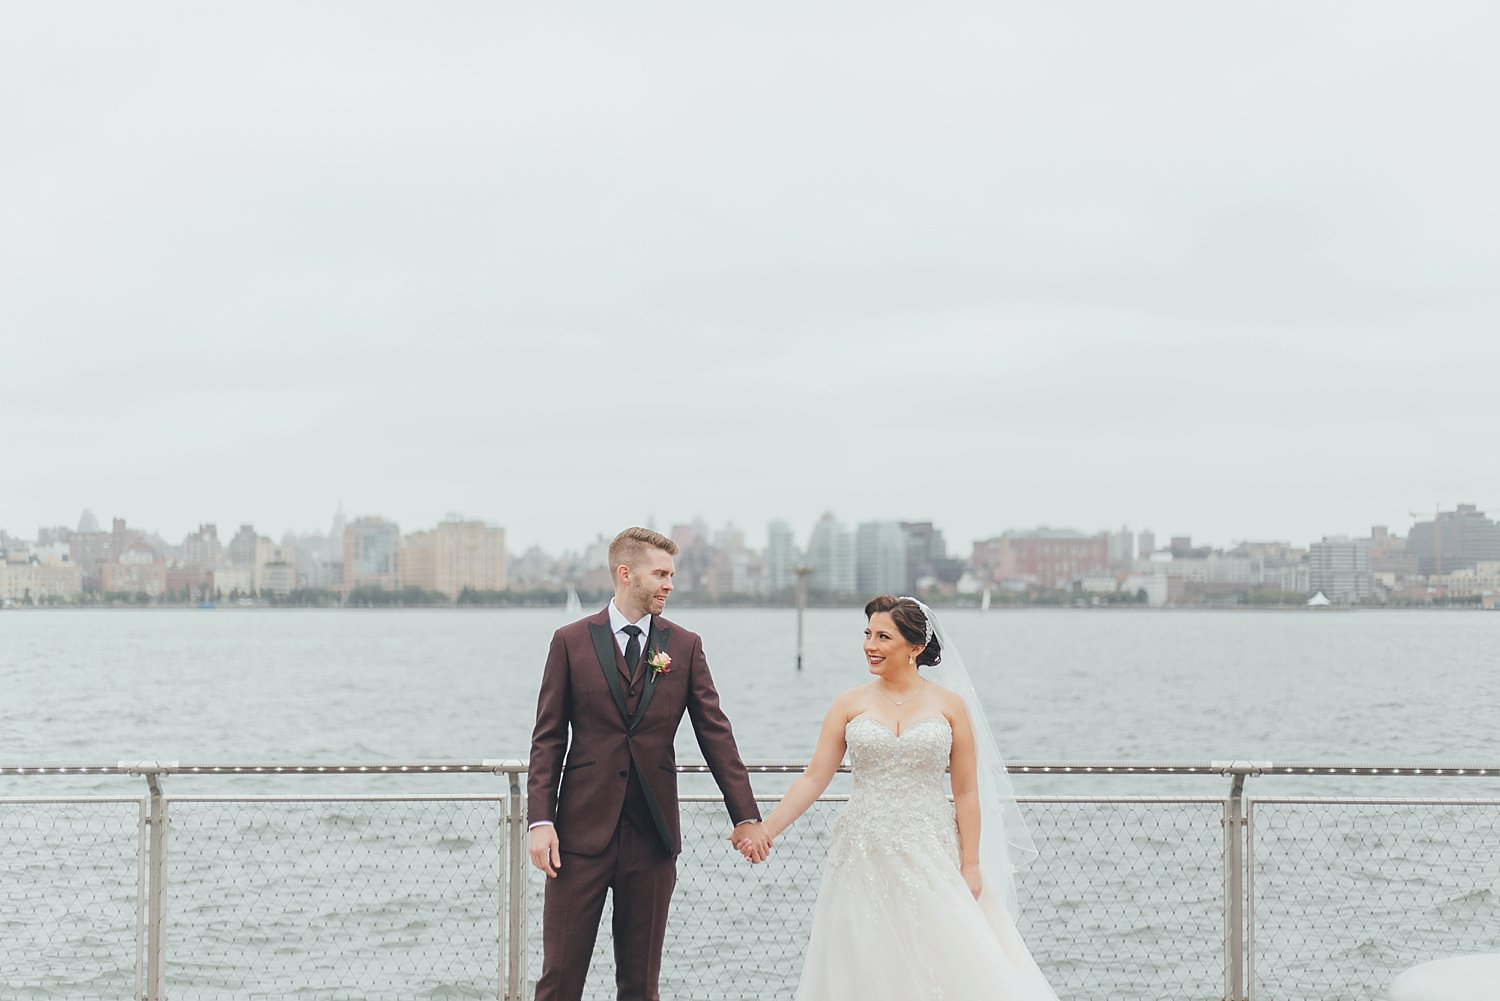 nyc-wedding-photography-nj-tri-state-cinematography-intothestory-by-moo-jae_0352.jpg